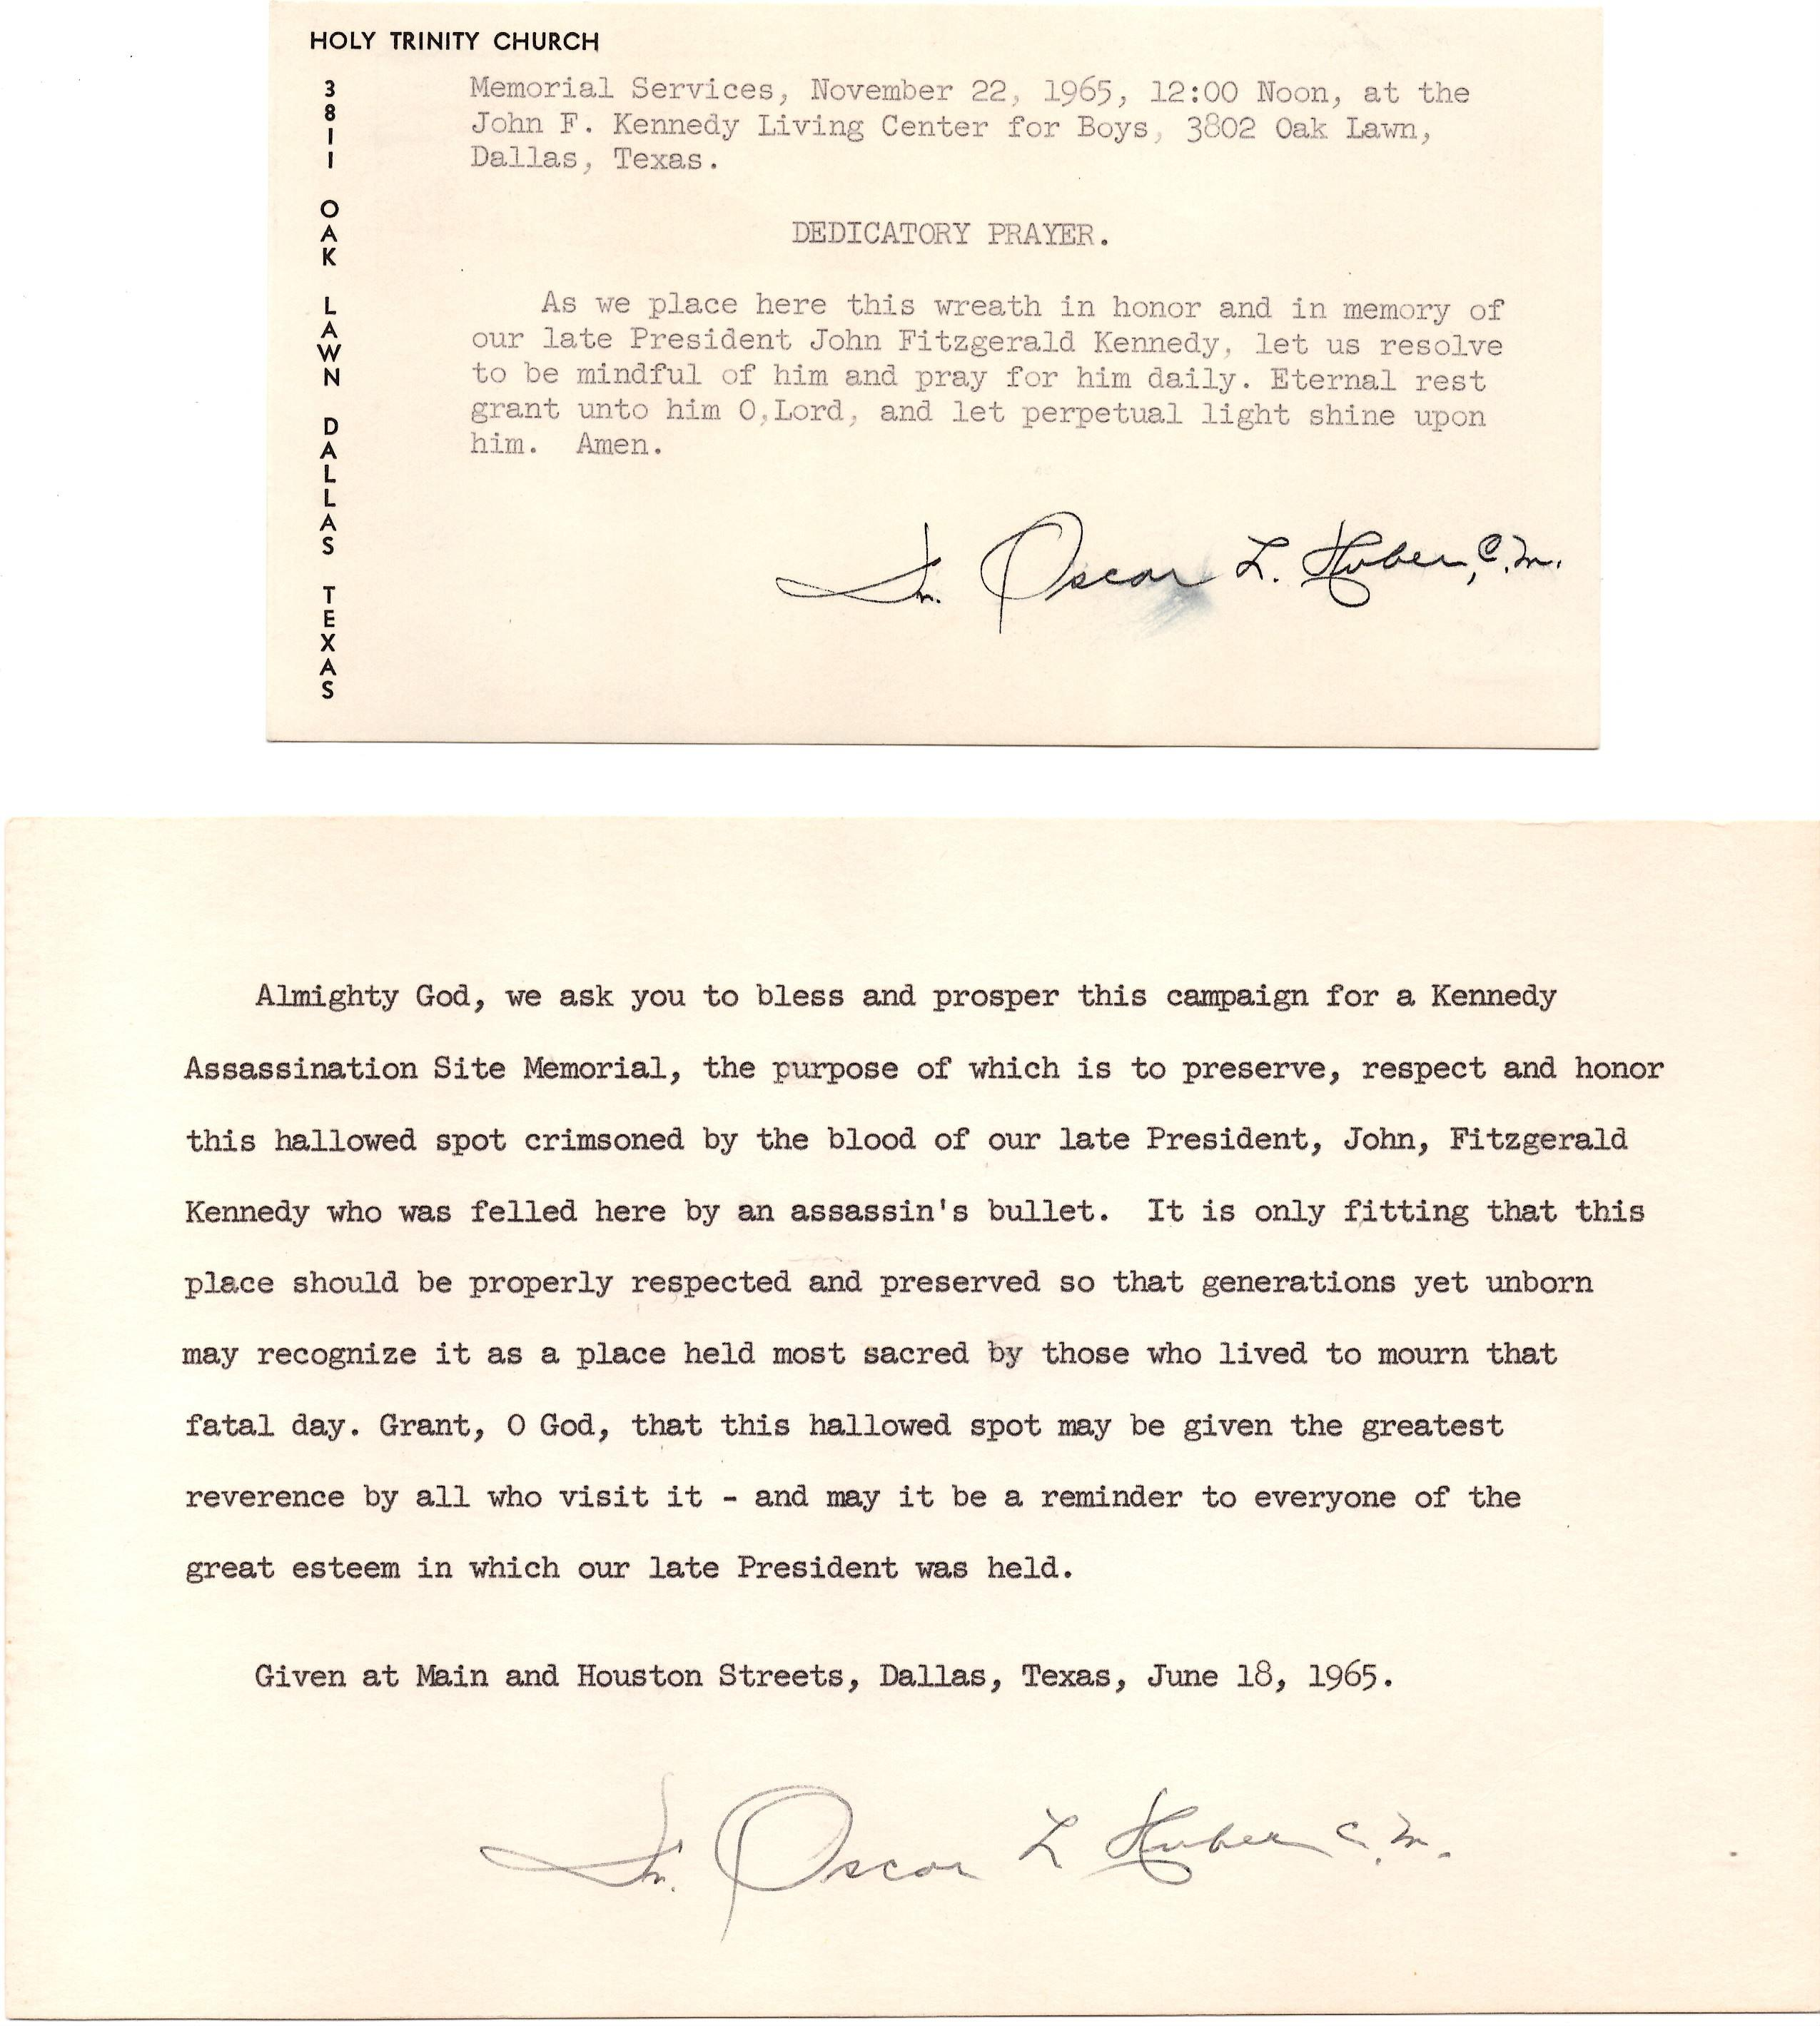 John F Kennedy, Two Prayers Signed by Priest Who Performed Last Rites